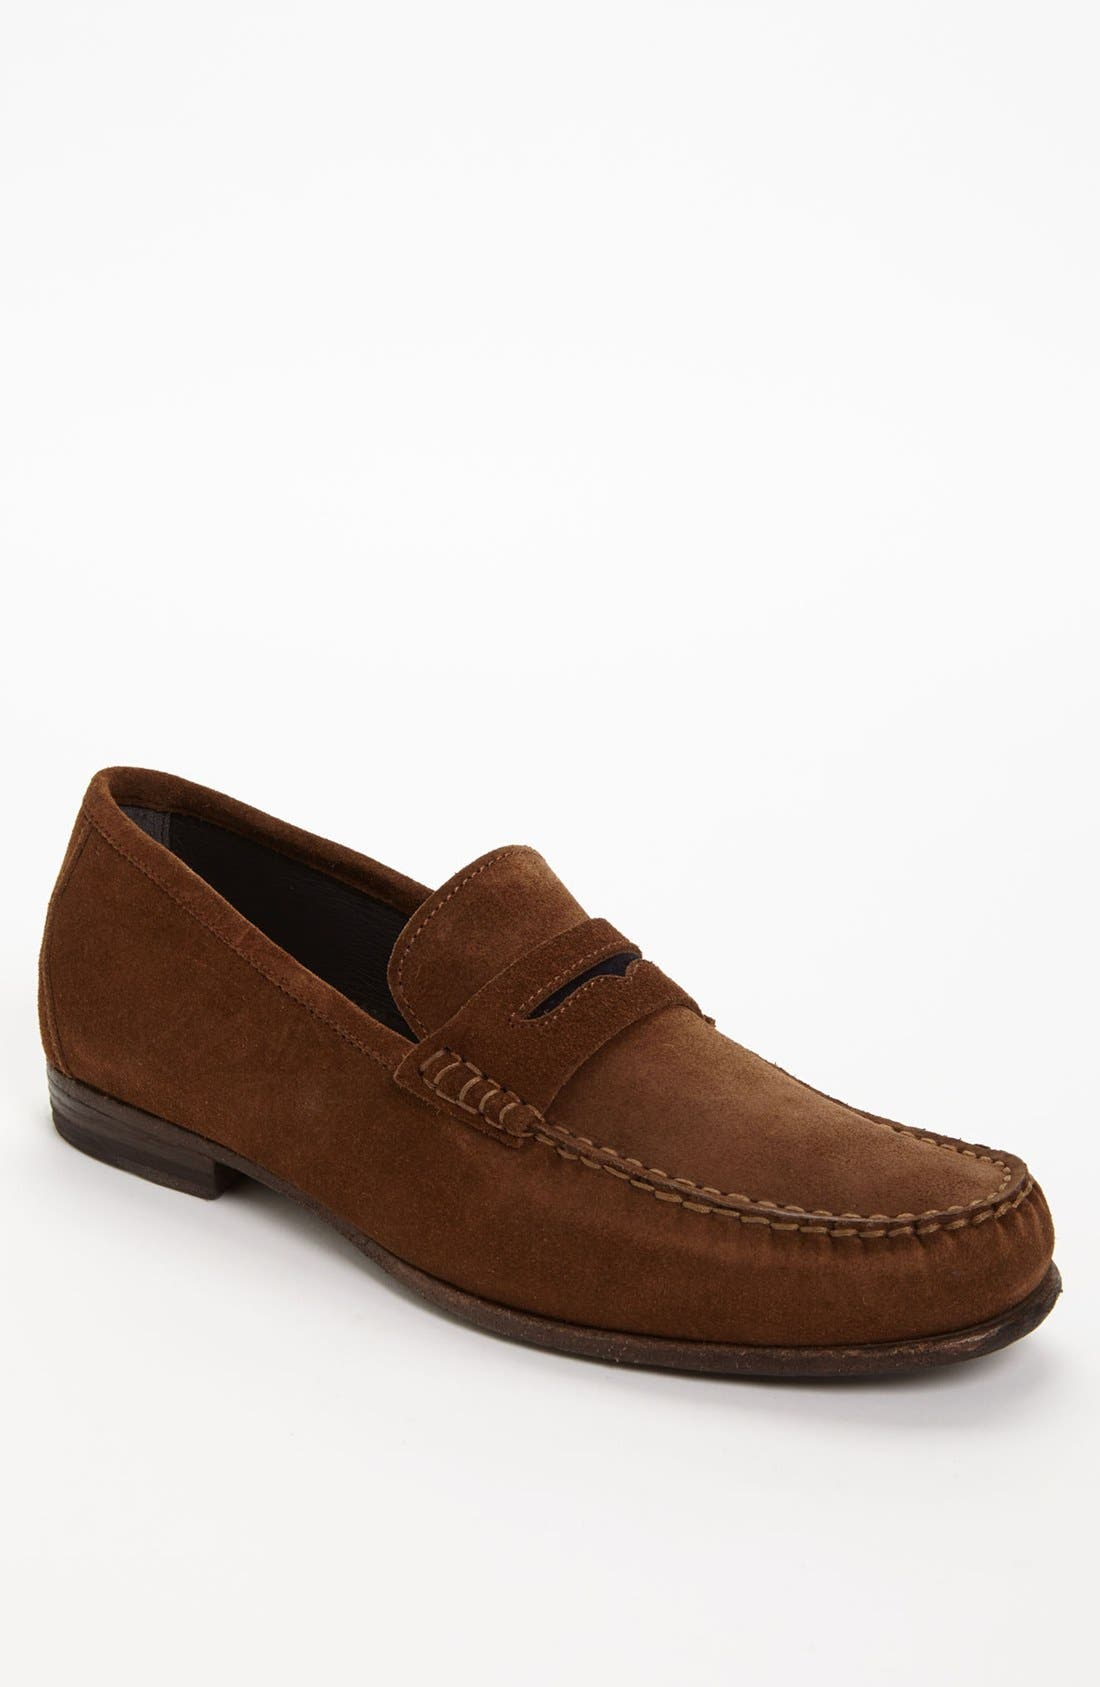 Main Image - To Boot New York 'Wilson' Suede Penny Loafer